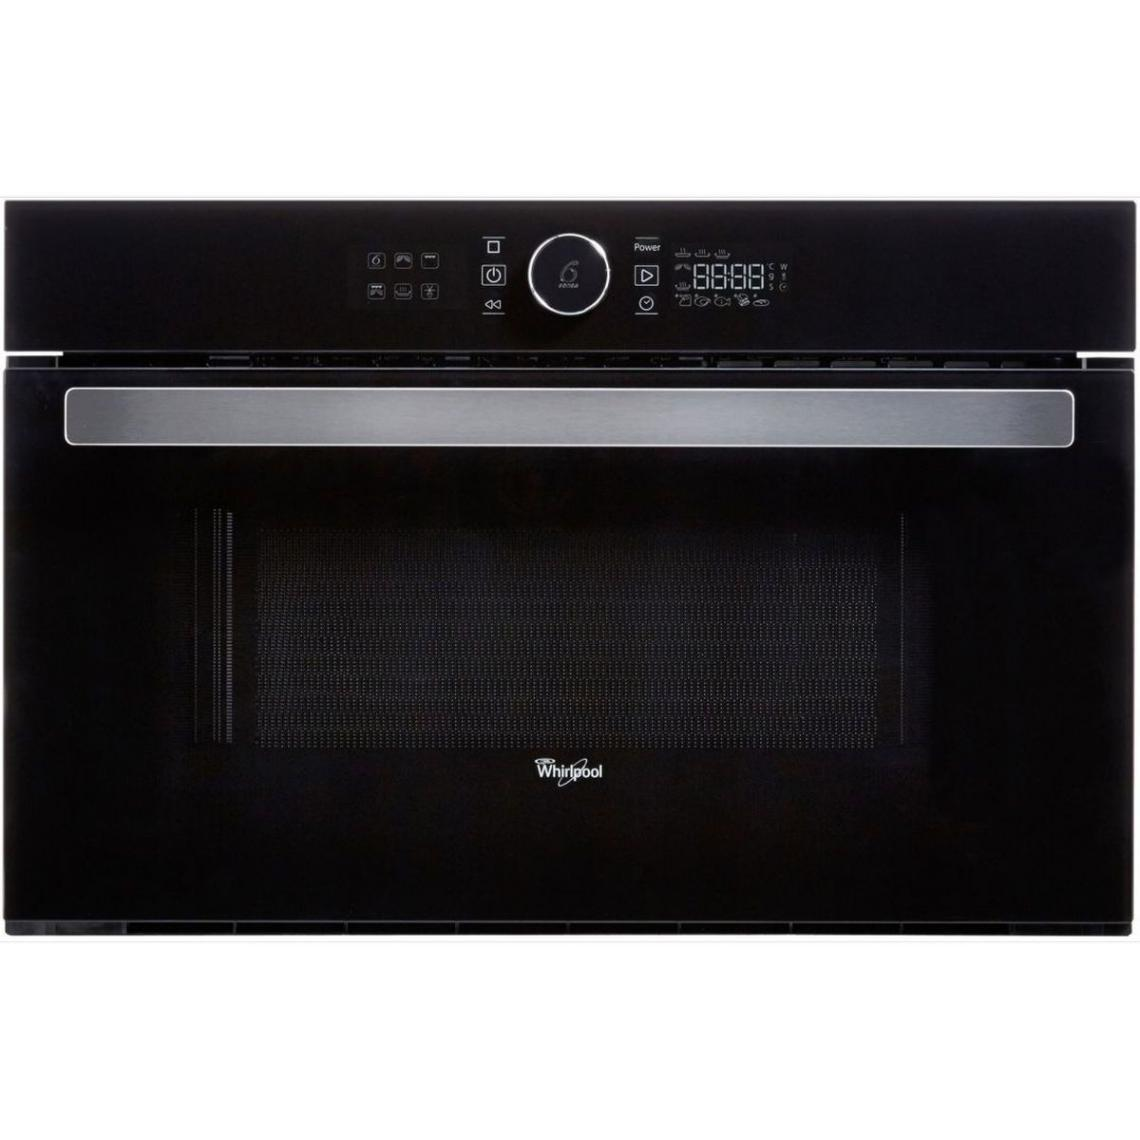 Whirlpool Micro-ondes Grill encastrable 1000W - AMW 730/NB - Noir